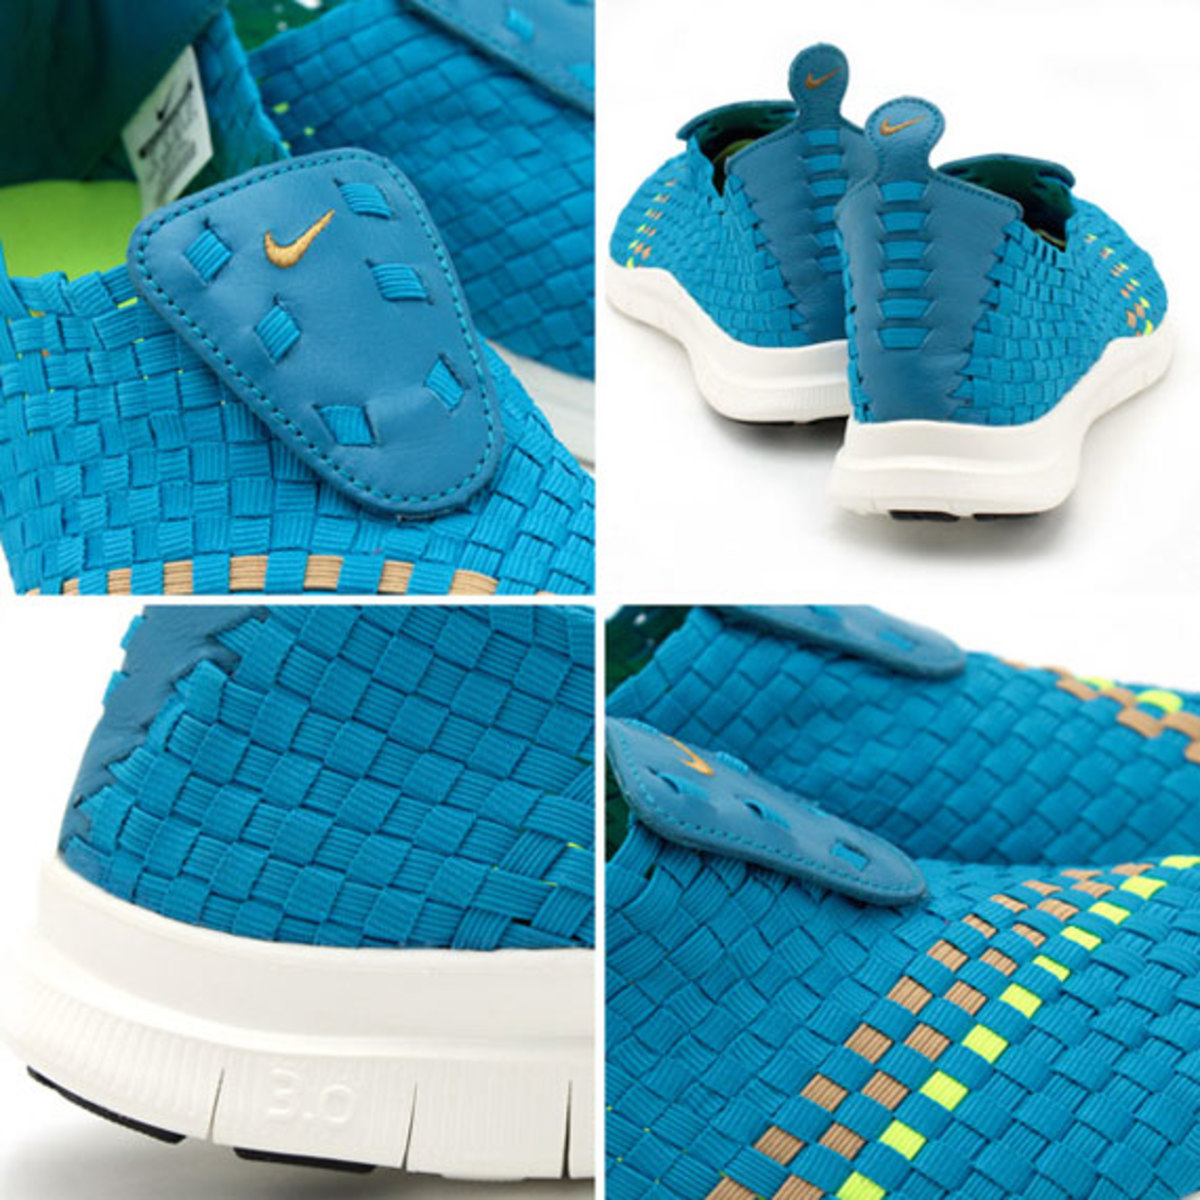 nike-free-woven-spring-2013-colorway-preview-04